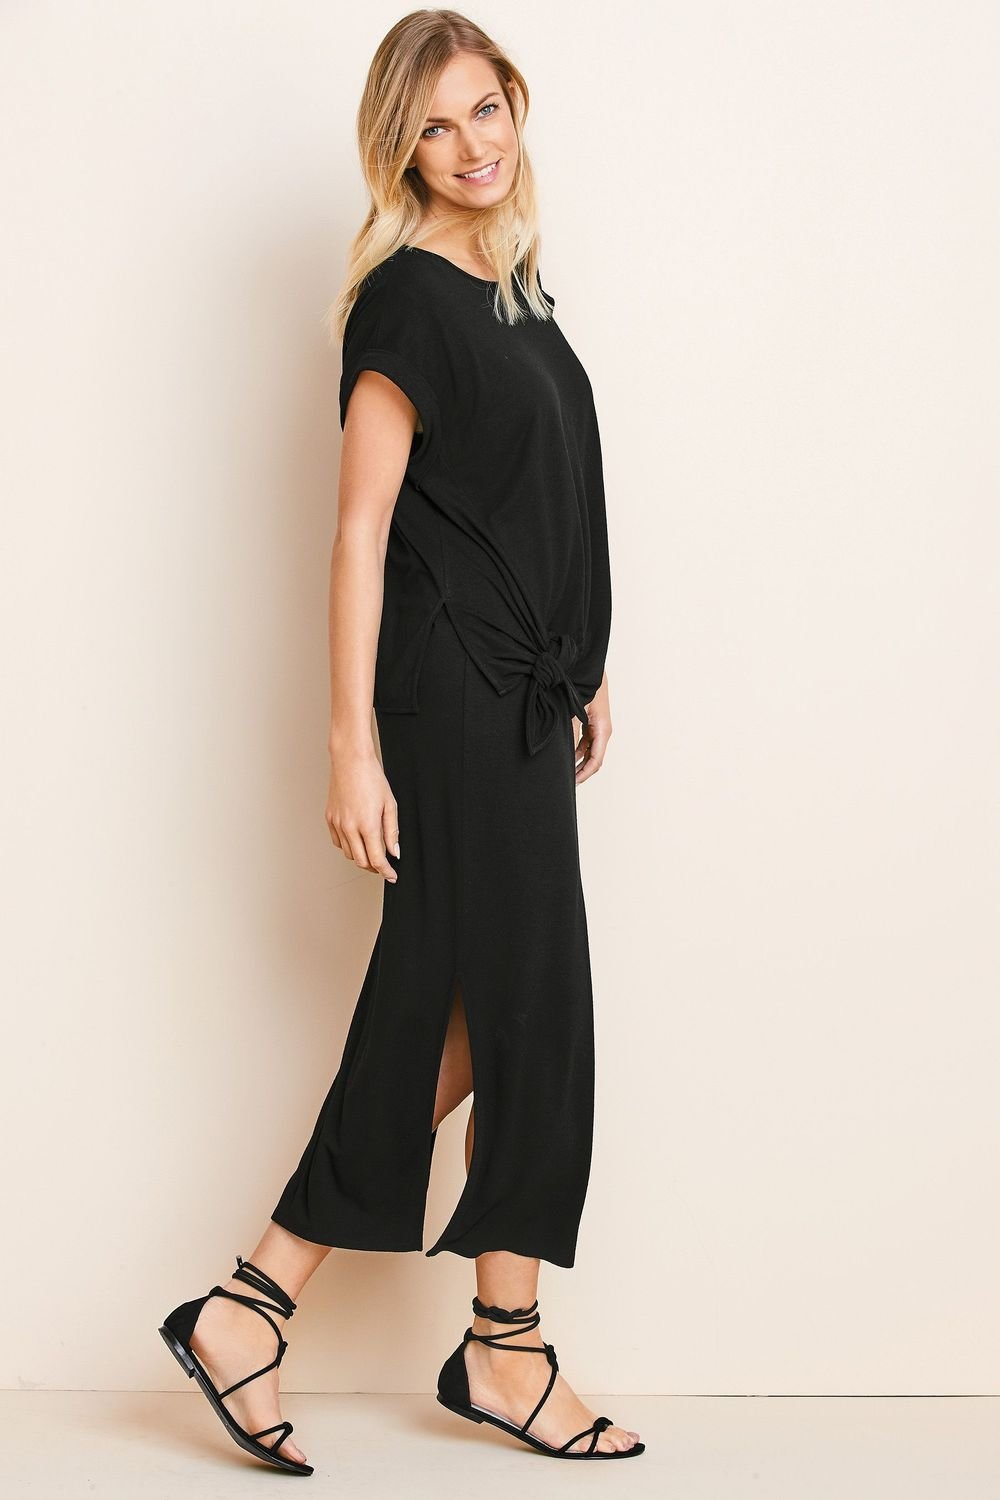 Find discount maternity clothes on sale at Motherhood Maternity. We've got the best deals anywhere on clearance maternity fashion, so shop today! Motherhood Maternity. NEXT Next Page; $ $ Tie Detail Maternity Tunic Take An Extra 40% Off Sale $ $ Ruffled Sleeve Maternity .